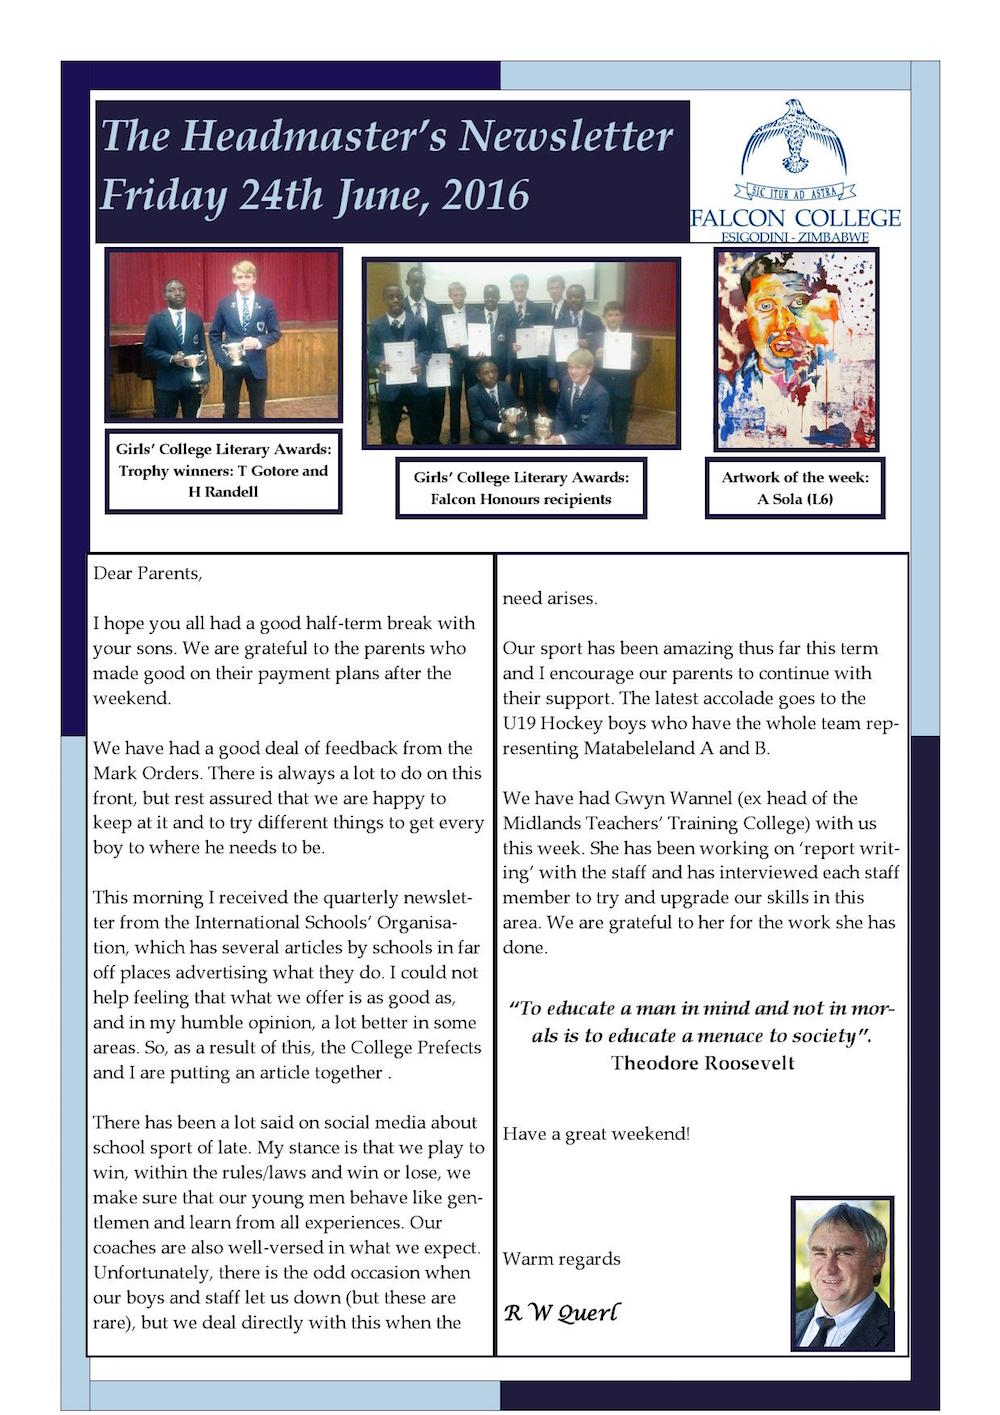 Headmaster's Newsletter Friday 24th June 2016 edited_000001